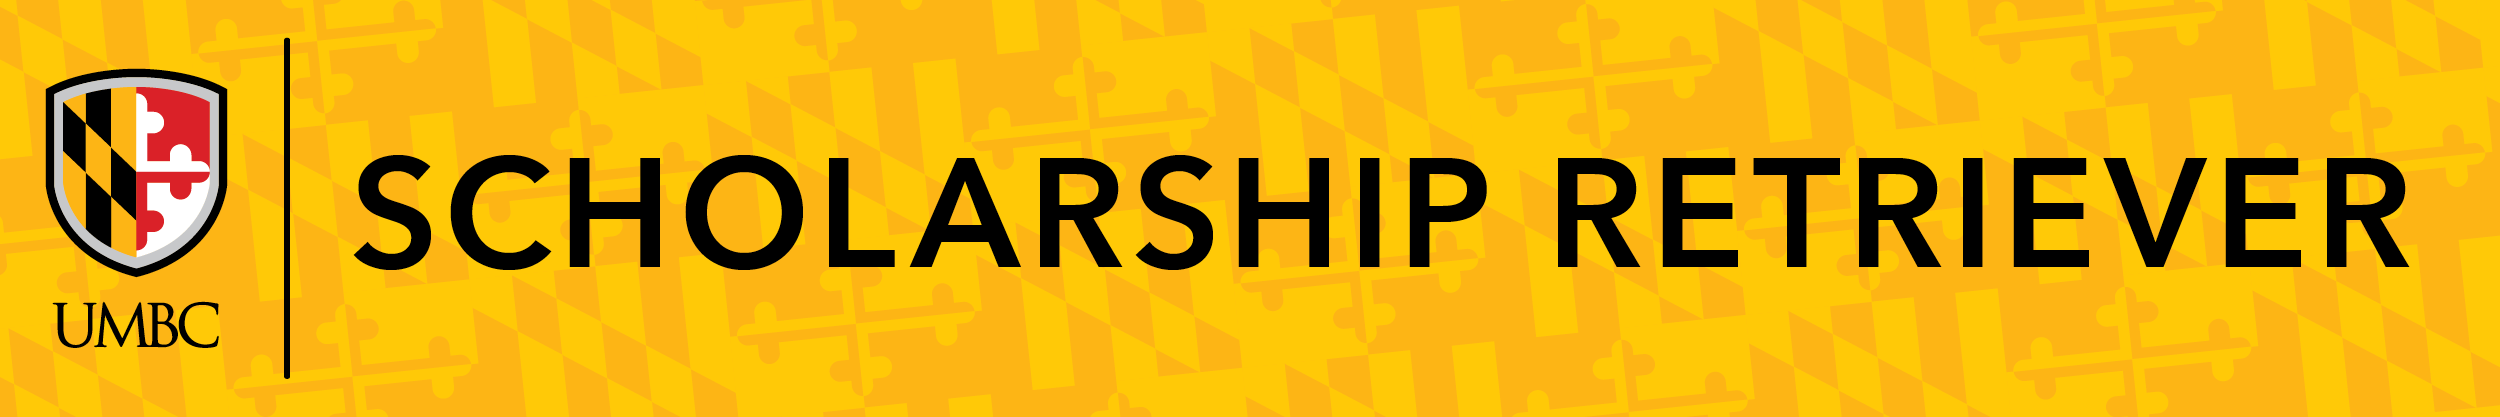 Scholarship Retriever - Financial Aid and Scholarships - UMBC